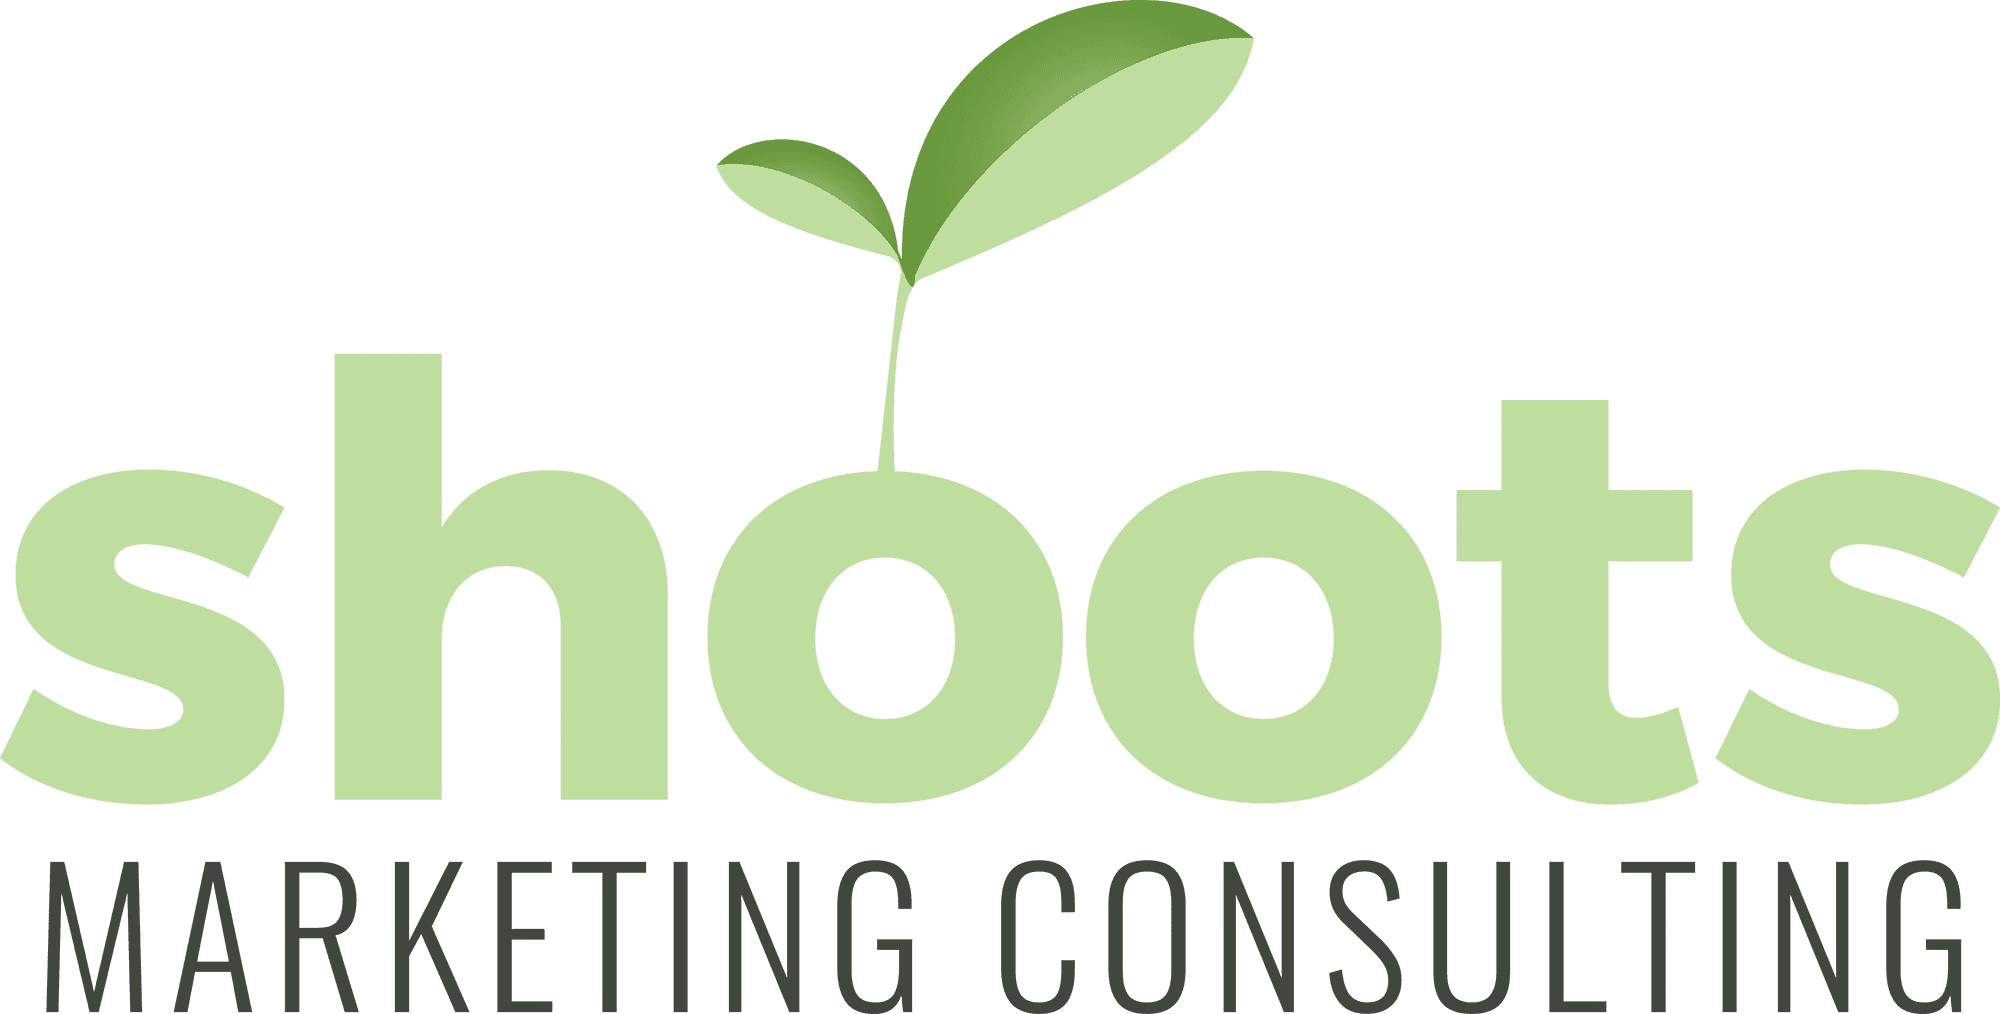 Shoots Marketing Consulting